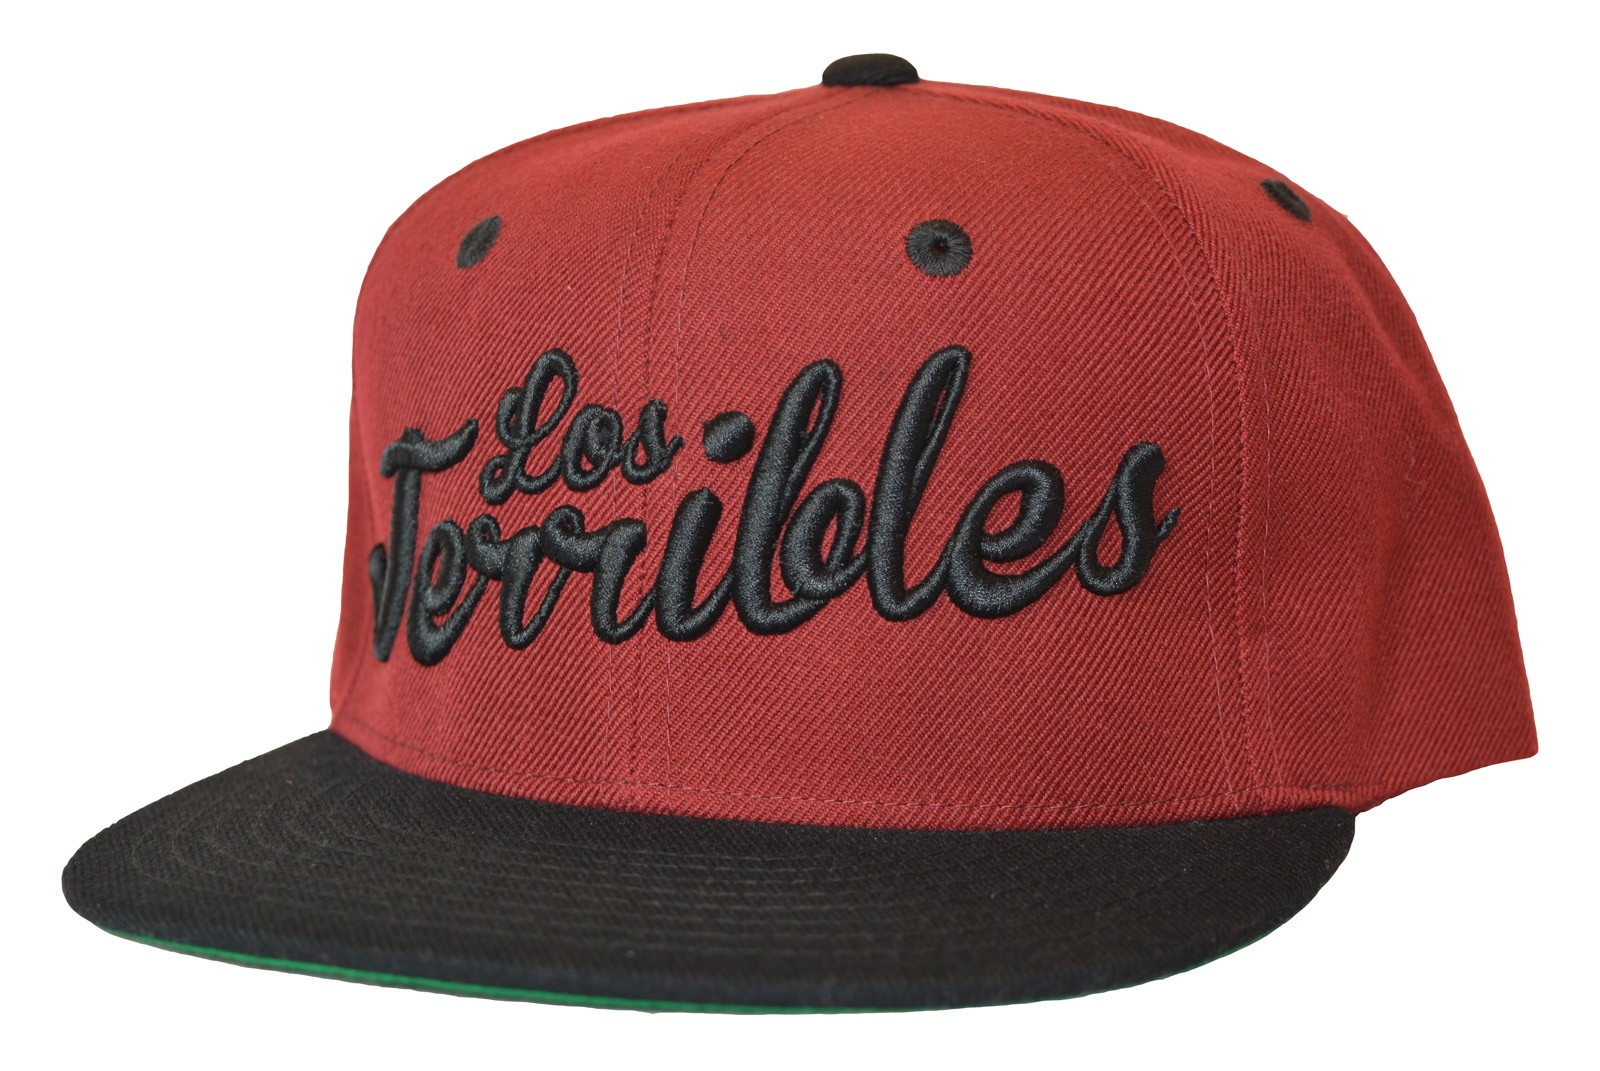 Supercobra Clothing Company - Los Terribles Snapback Cap